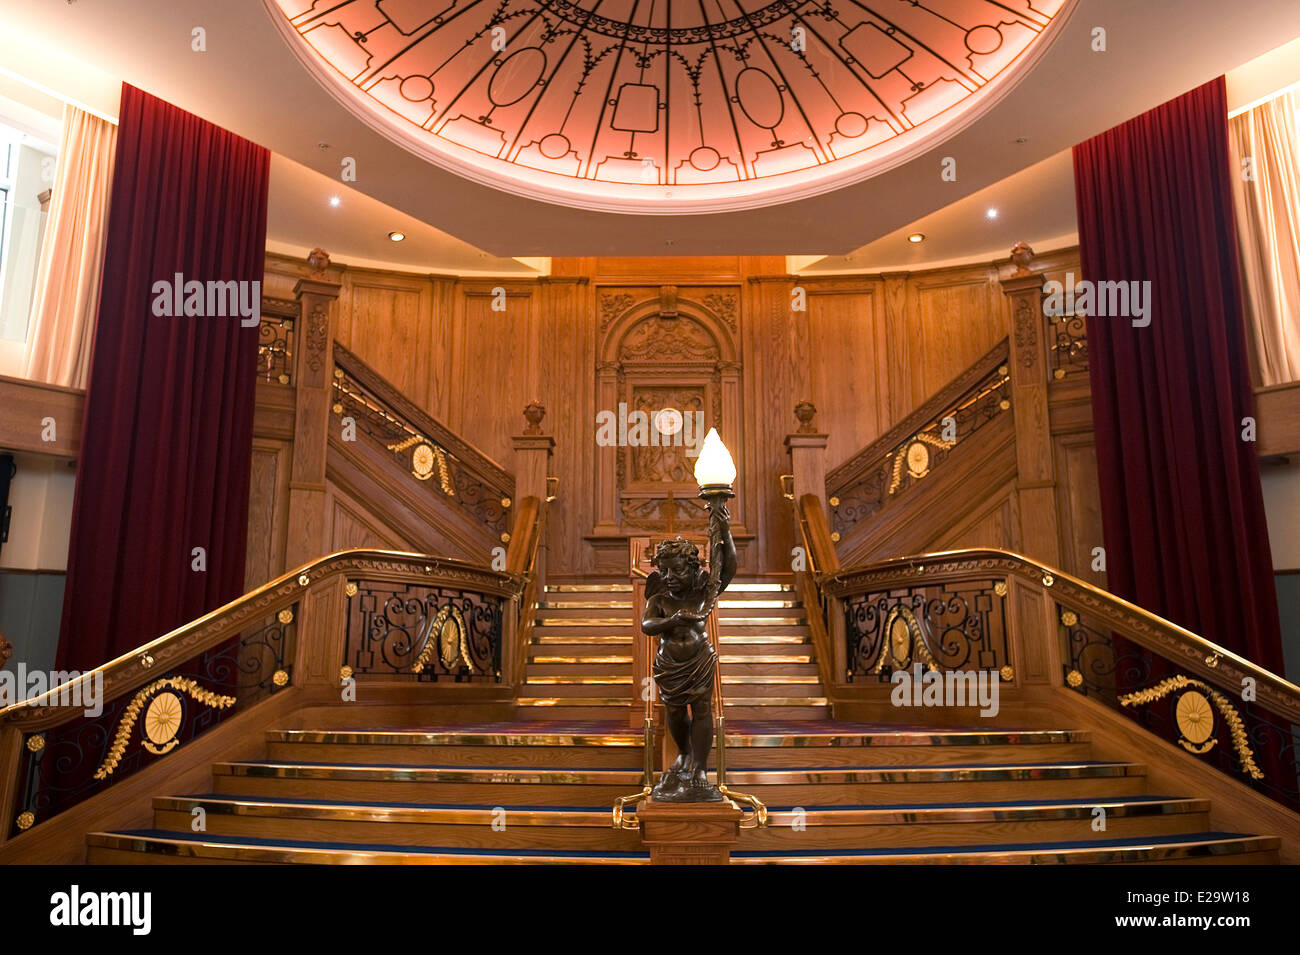 United Kingdom, Northern Ireland, Belfast, the Titanic Belfast museum, the famous staircase - Stock Image